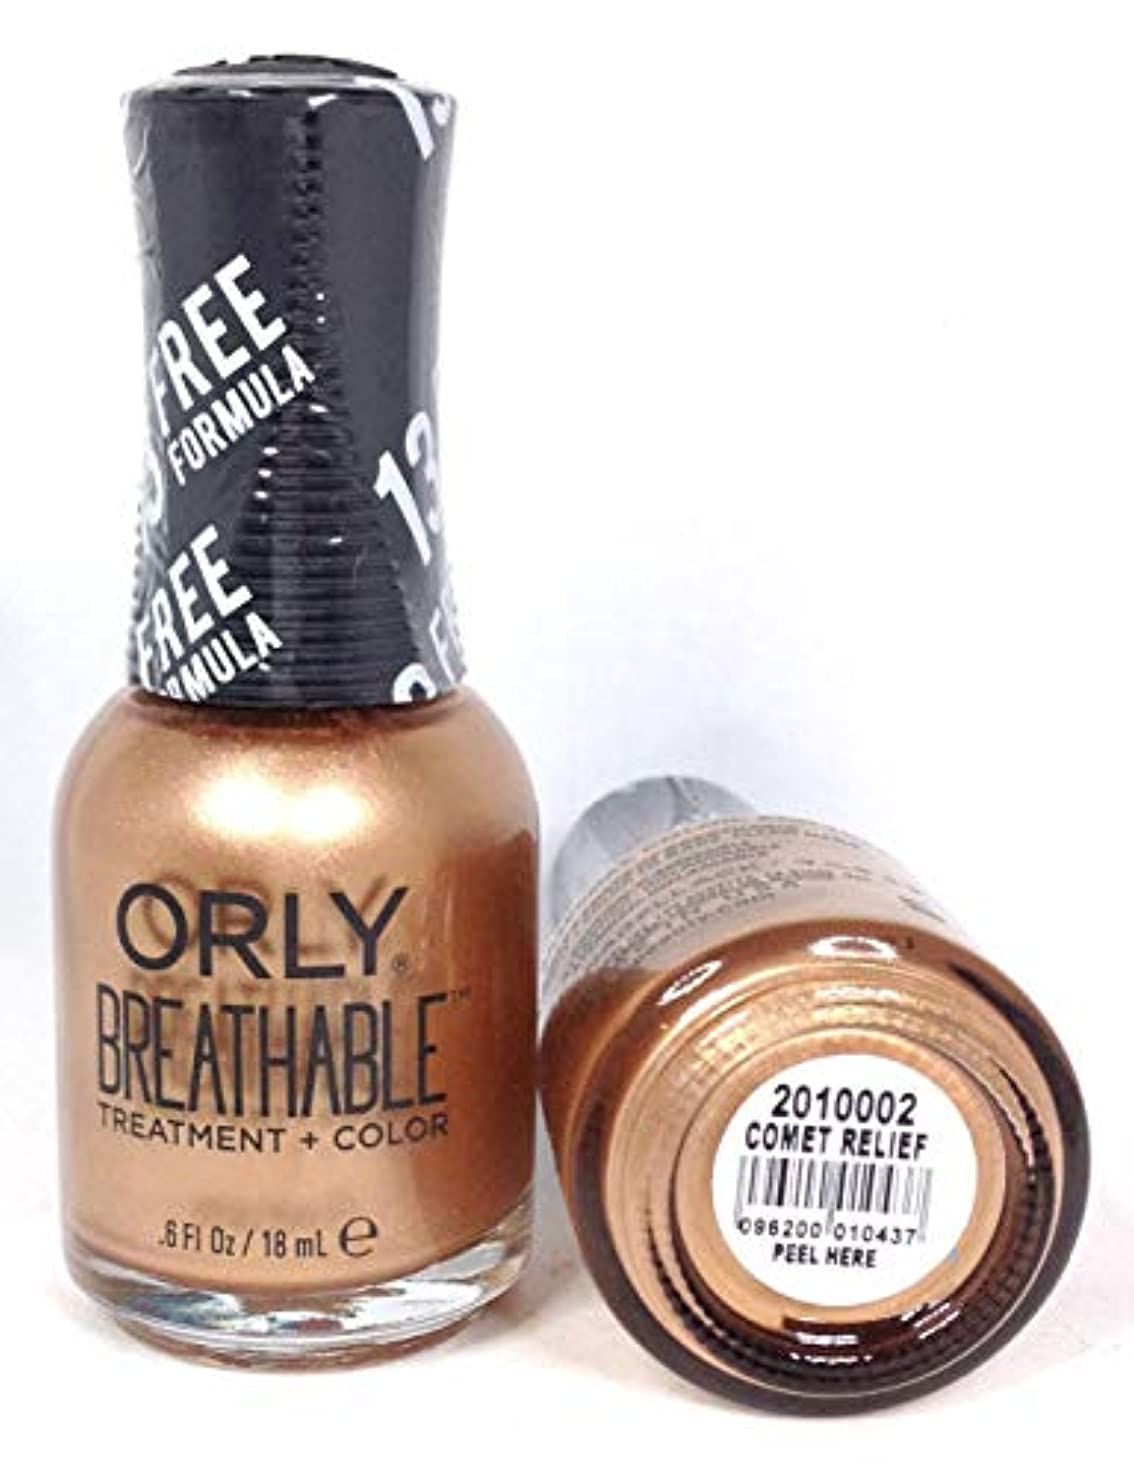 技術的な成功した大学ORLY Breathable Lacquer - Treatment+Color - Comet Relief - 18 mL / 0.6 oz